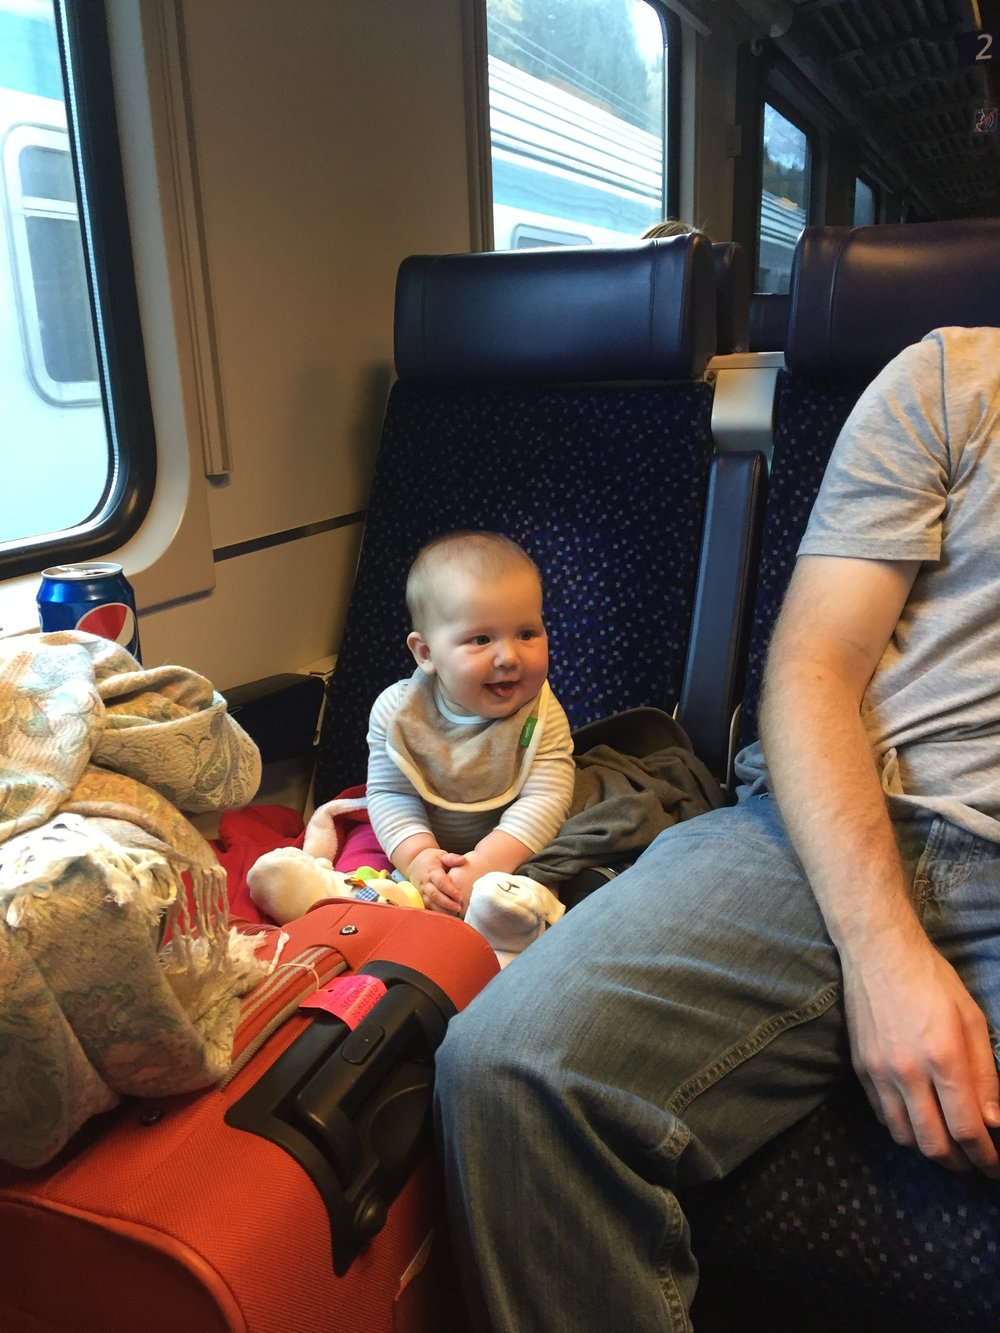 Our daughter and our lugage on a 5 hour train ride from Insbruck, Austria to Venice, Italy in 2015